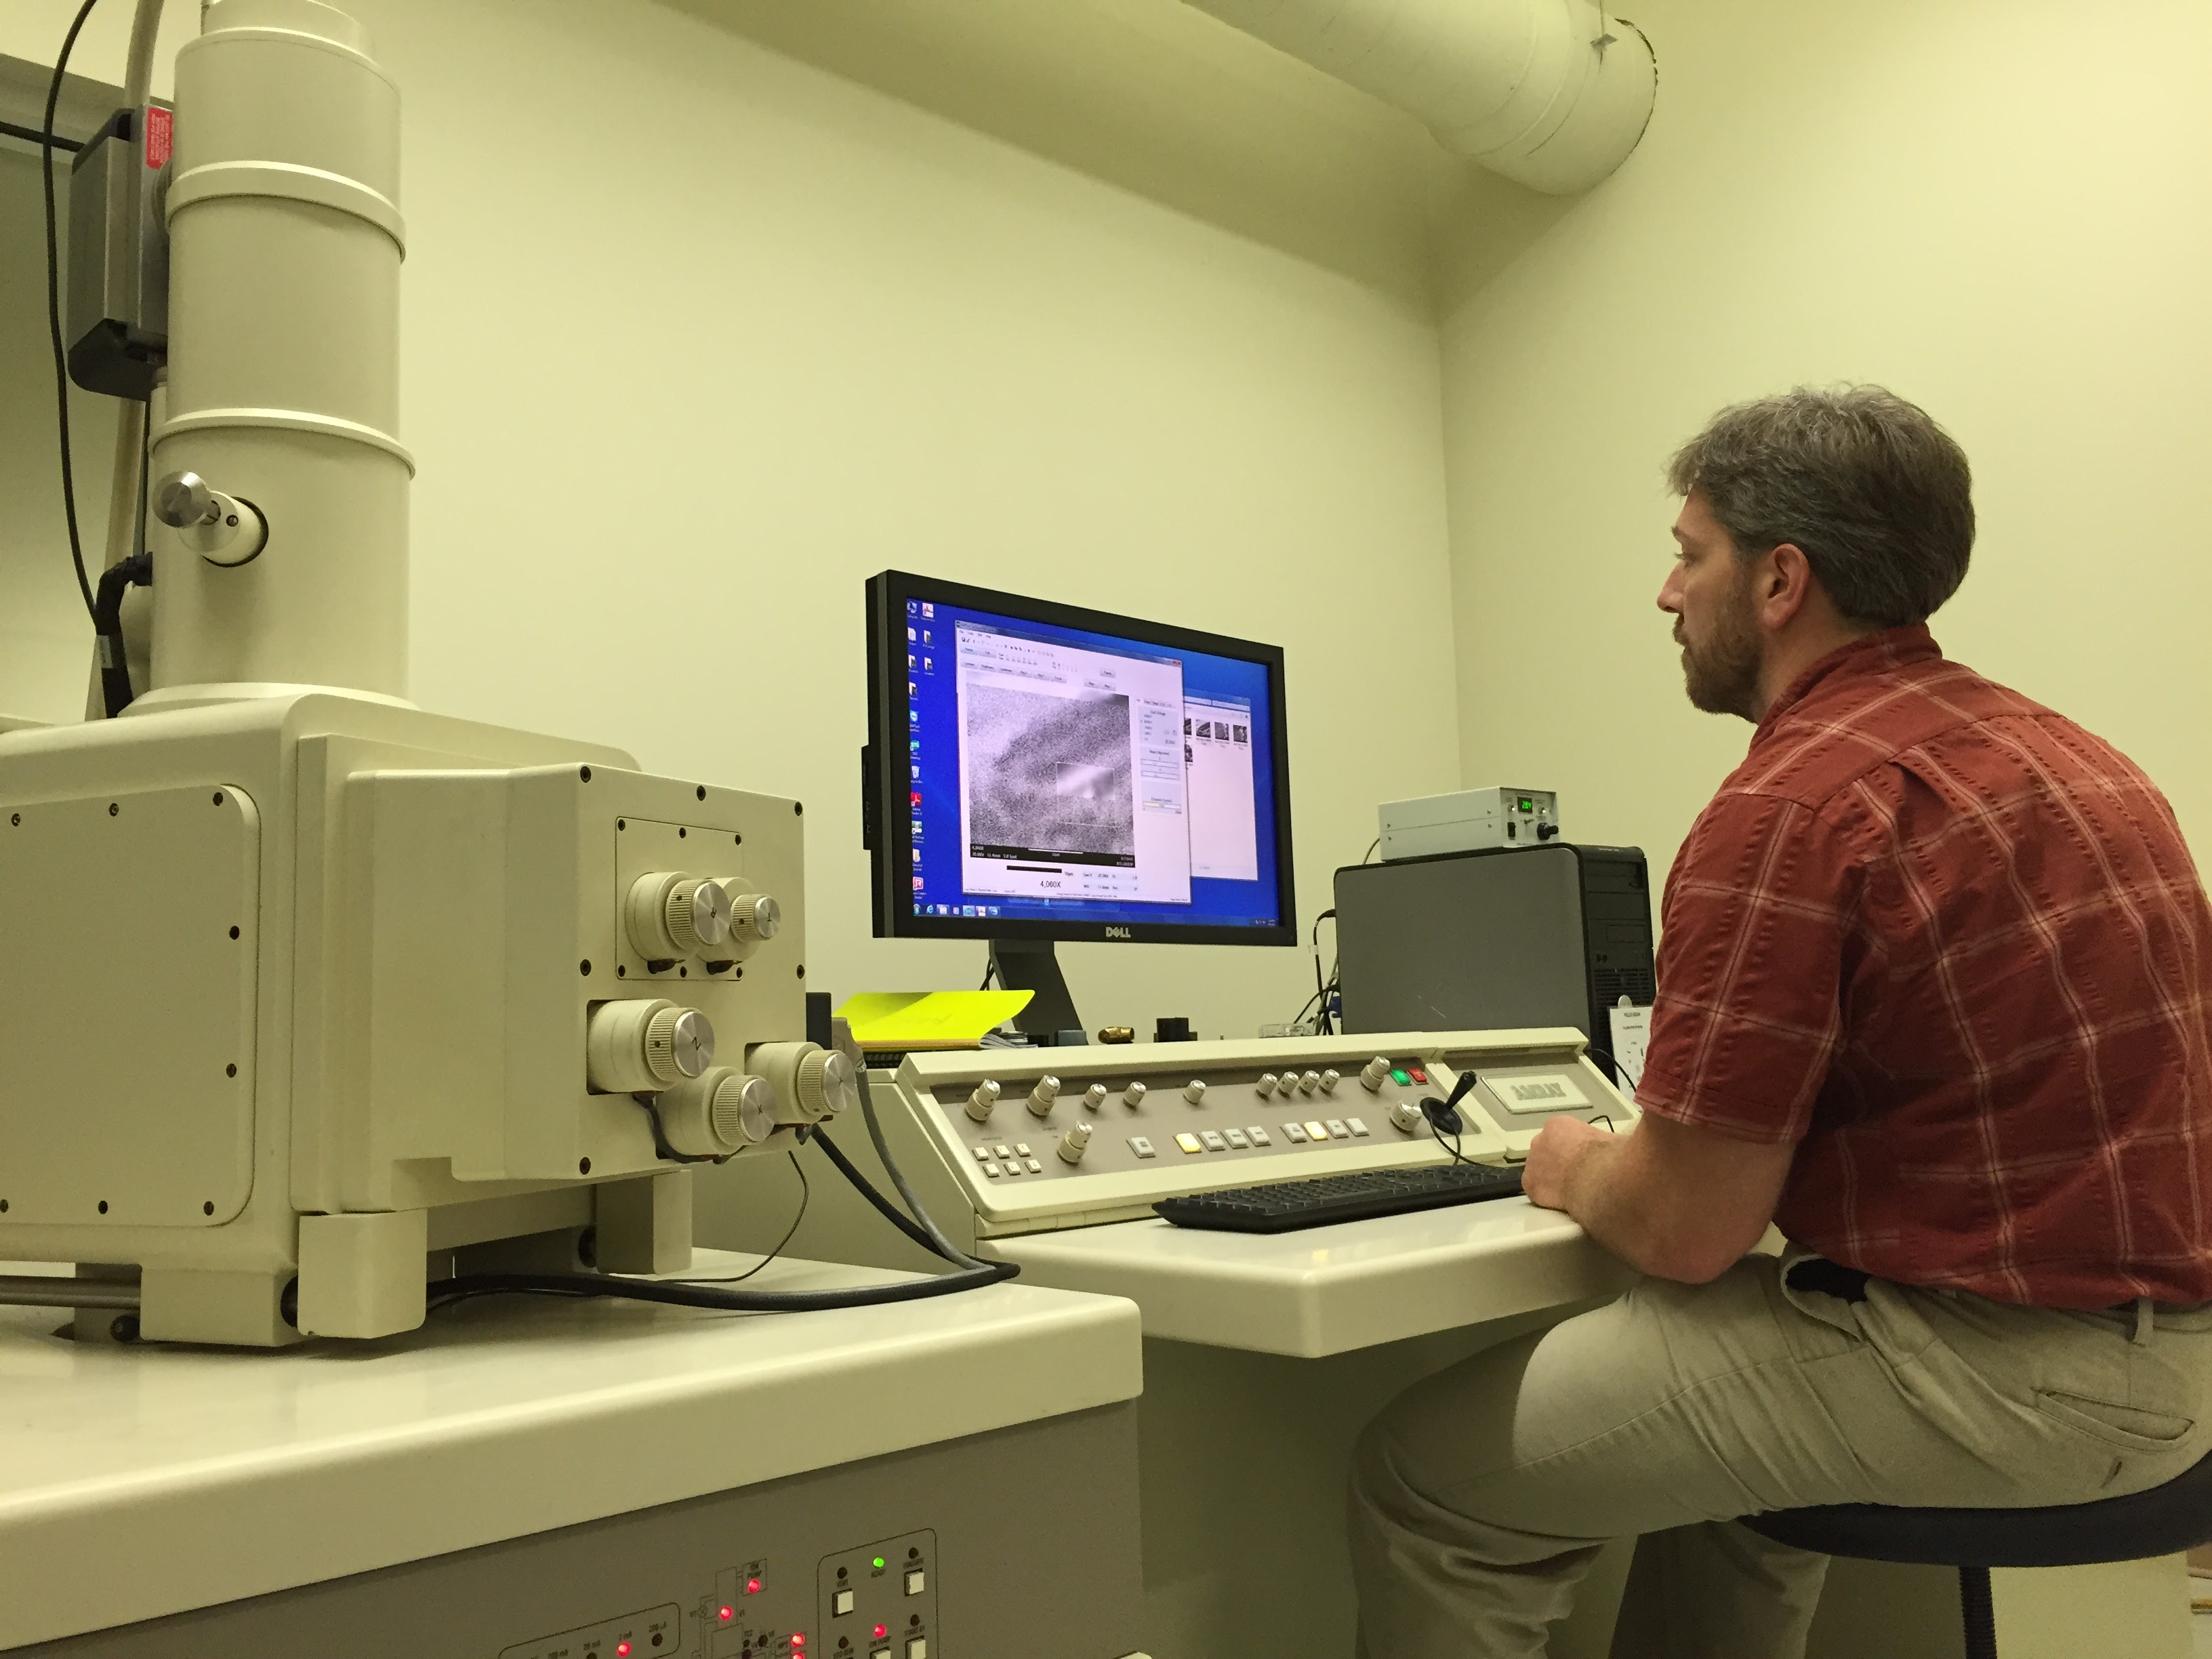 Scanning electron microscope analyzes type of paint to confirm parts match missing plane, Aug. 11, 2015. (Photo: Carolyn Presutti / VOA)